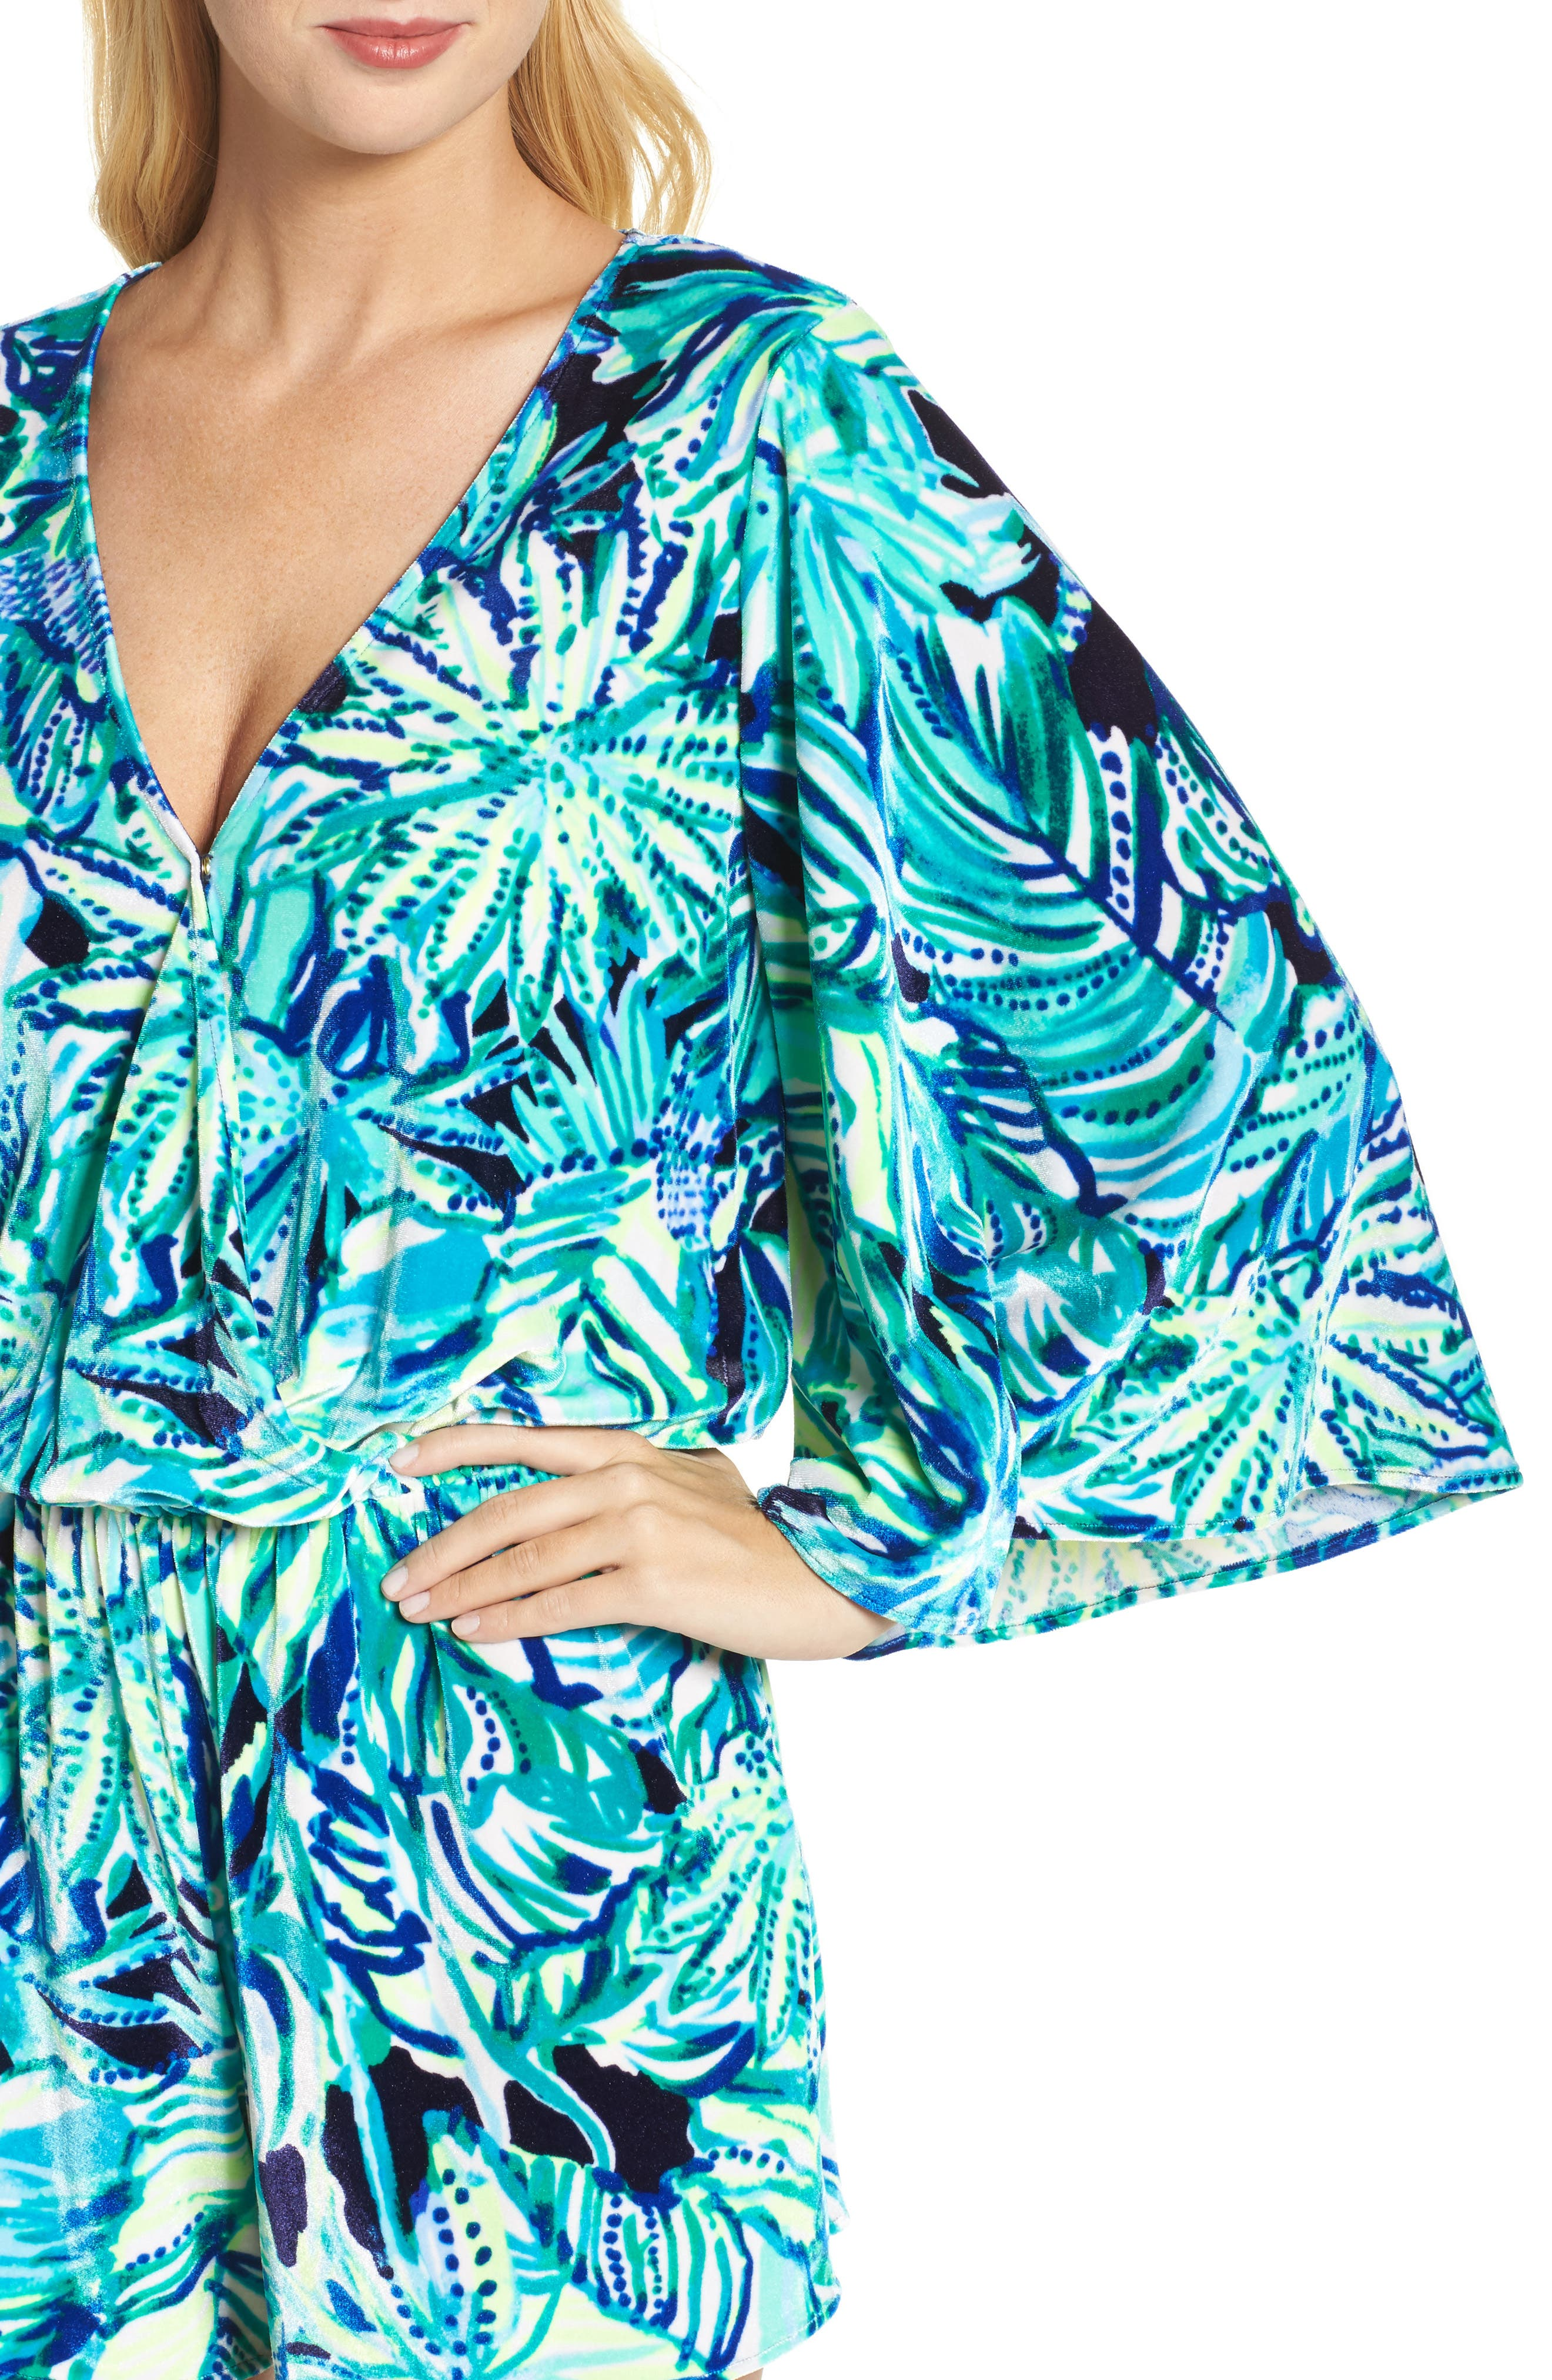 Lily Pulitzer<sup>®</sup> Viviana Romper,                             Alternate thumbnail 4, color,                             440